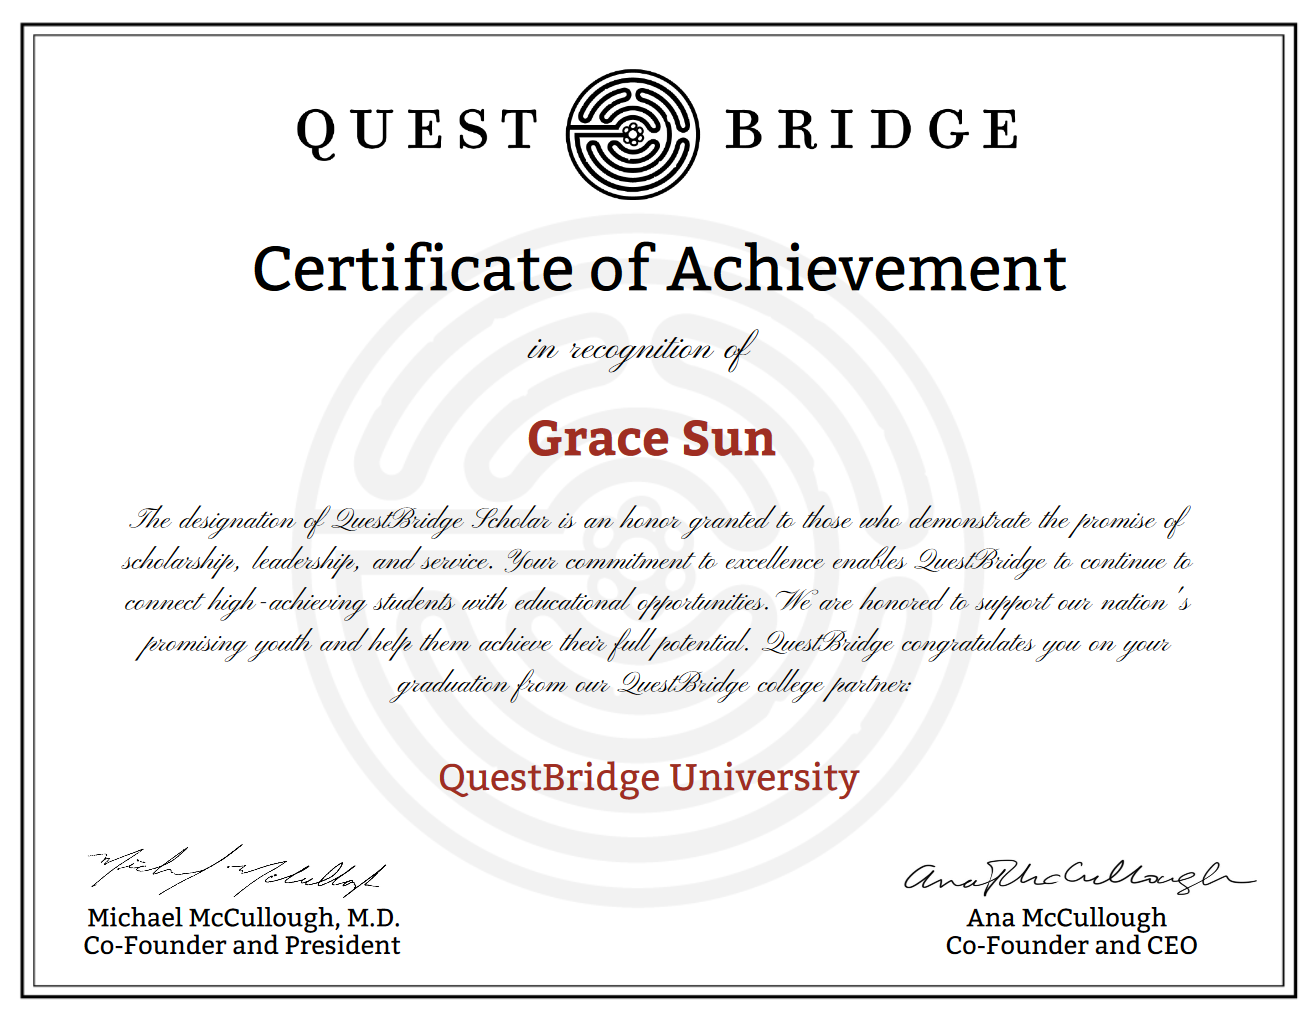 Questbridge_Certificate_of_Achievement